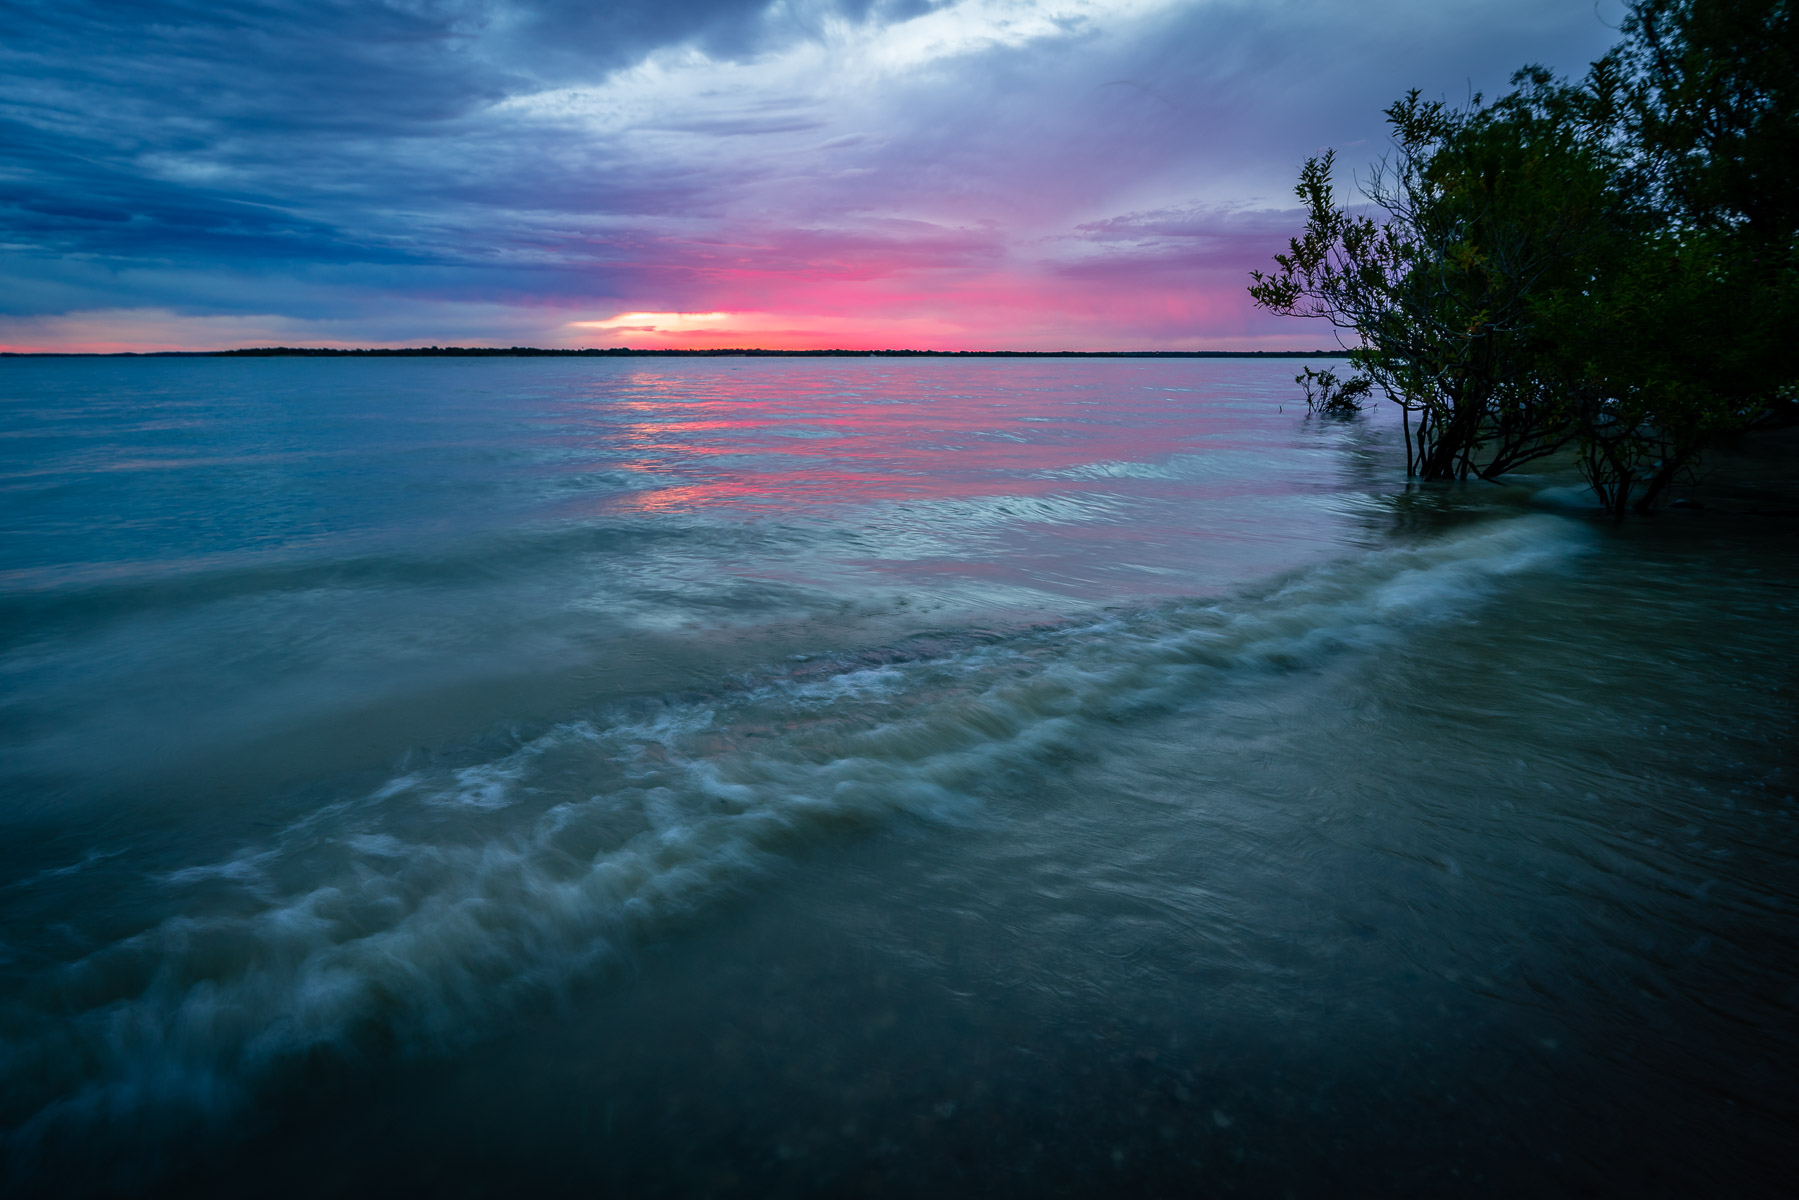 Waves roll onto the shore of North Texas' Lake Lavon.